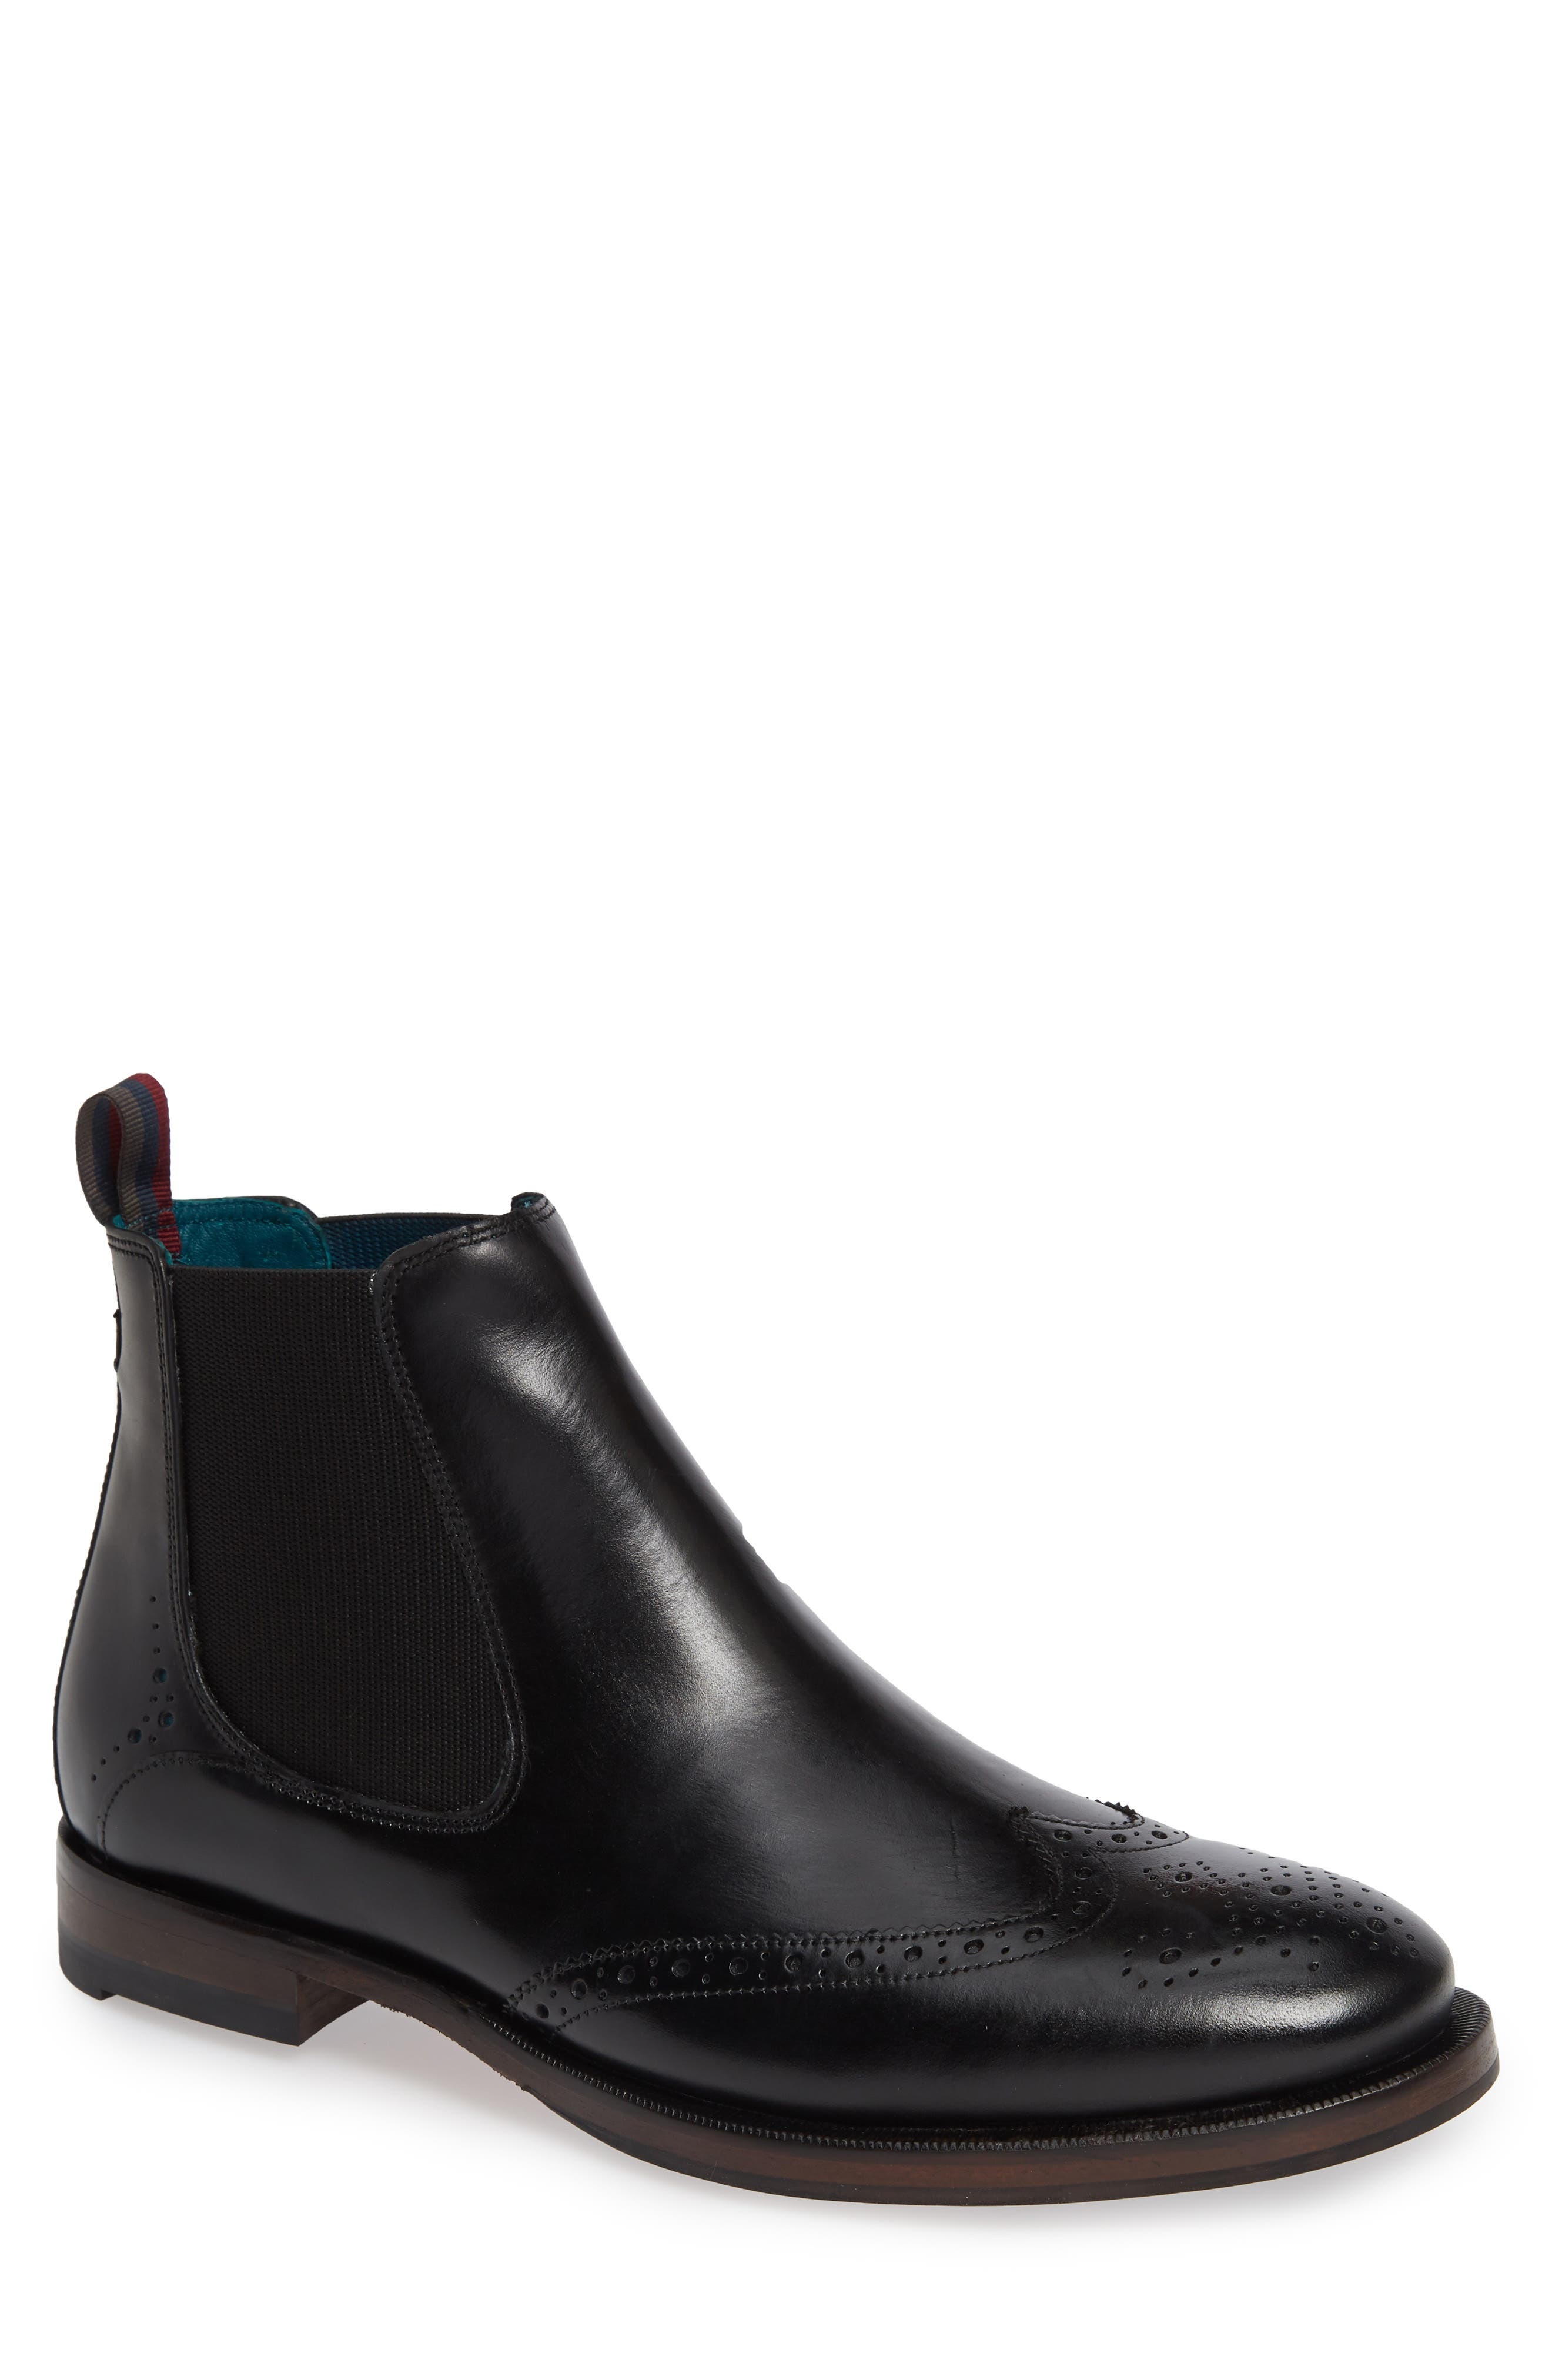 Men's Victorian Costume and Clothing Guide Mens Ted Baker London Camheri Wingtip Chelsea Boot $158.98 AT vintagedancer.com